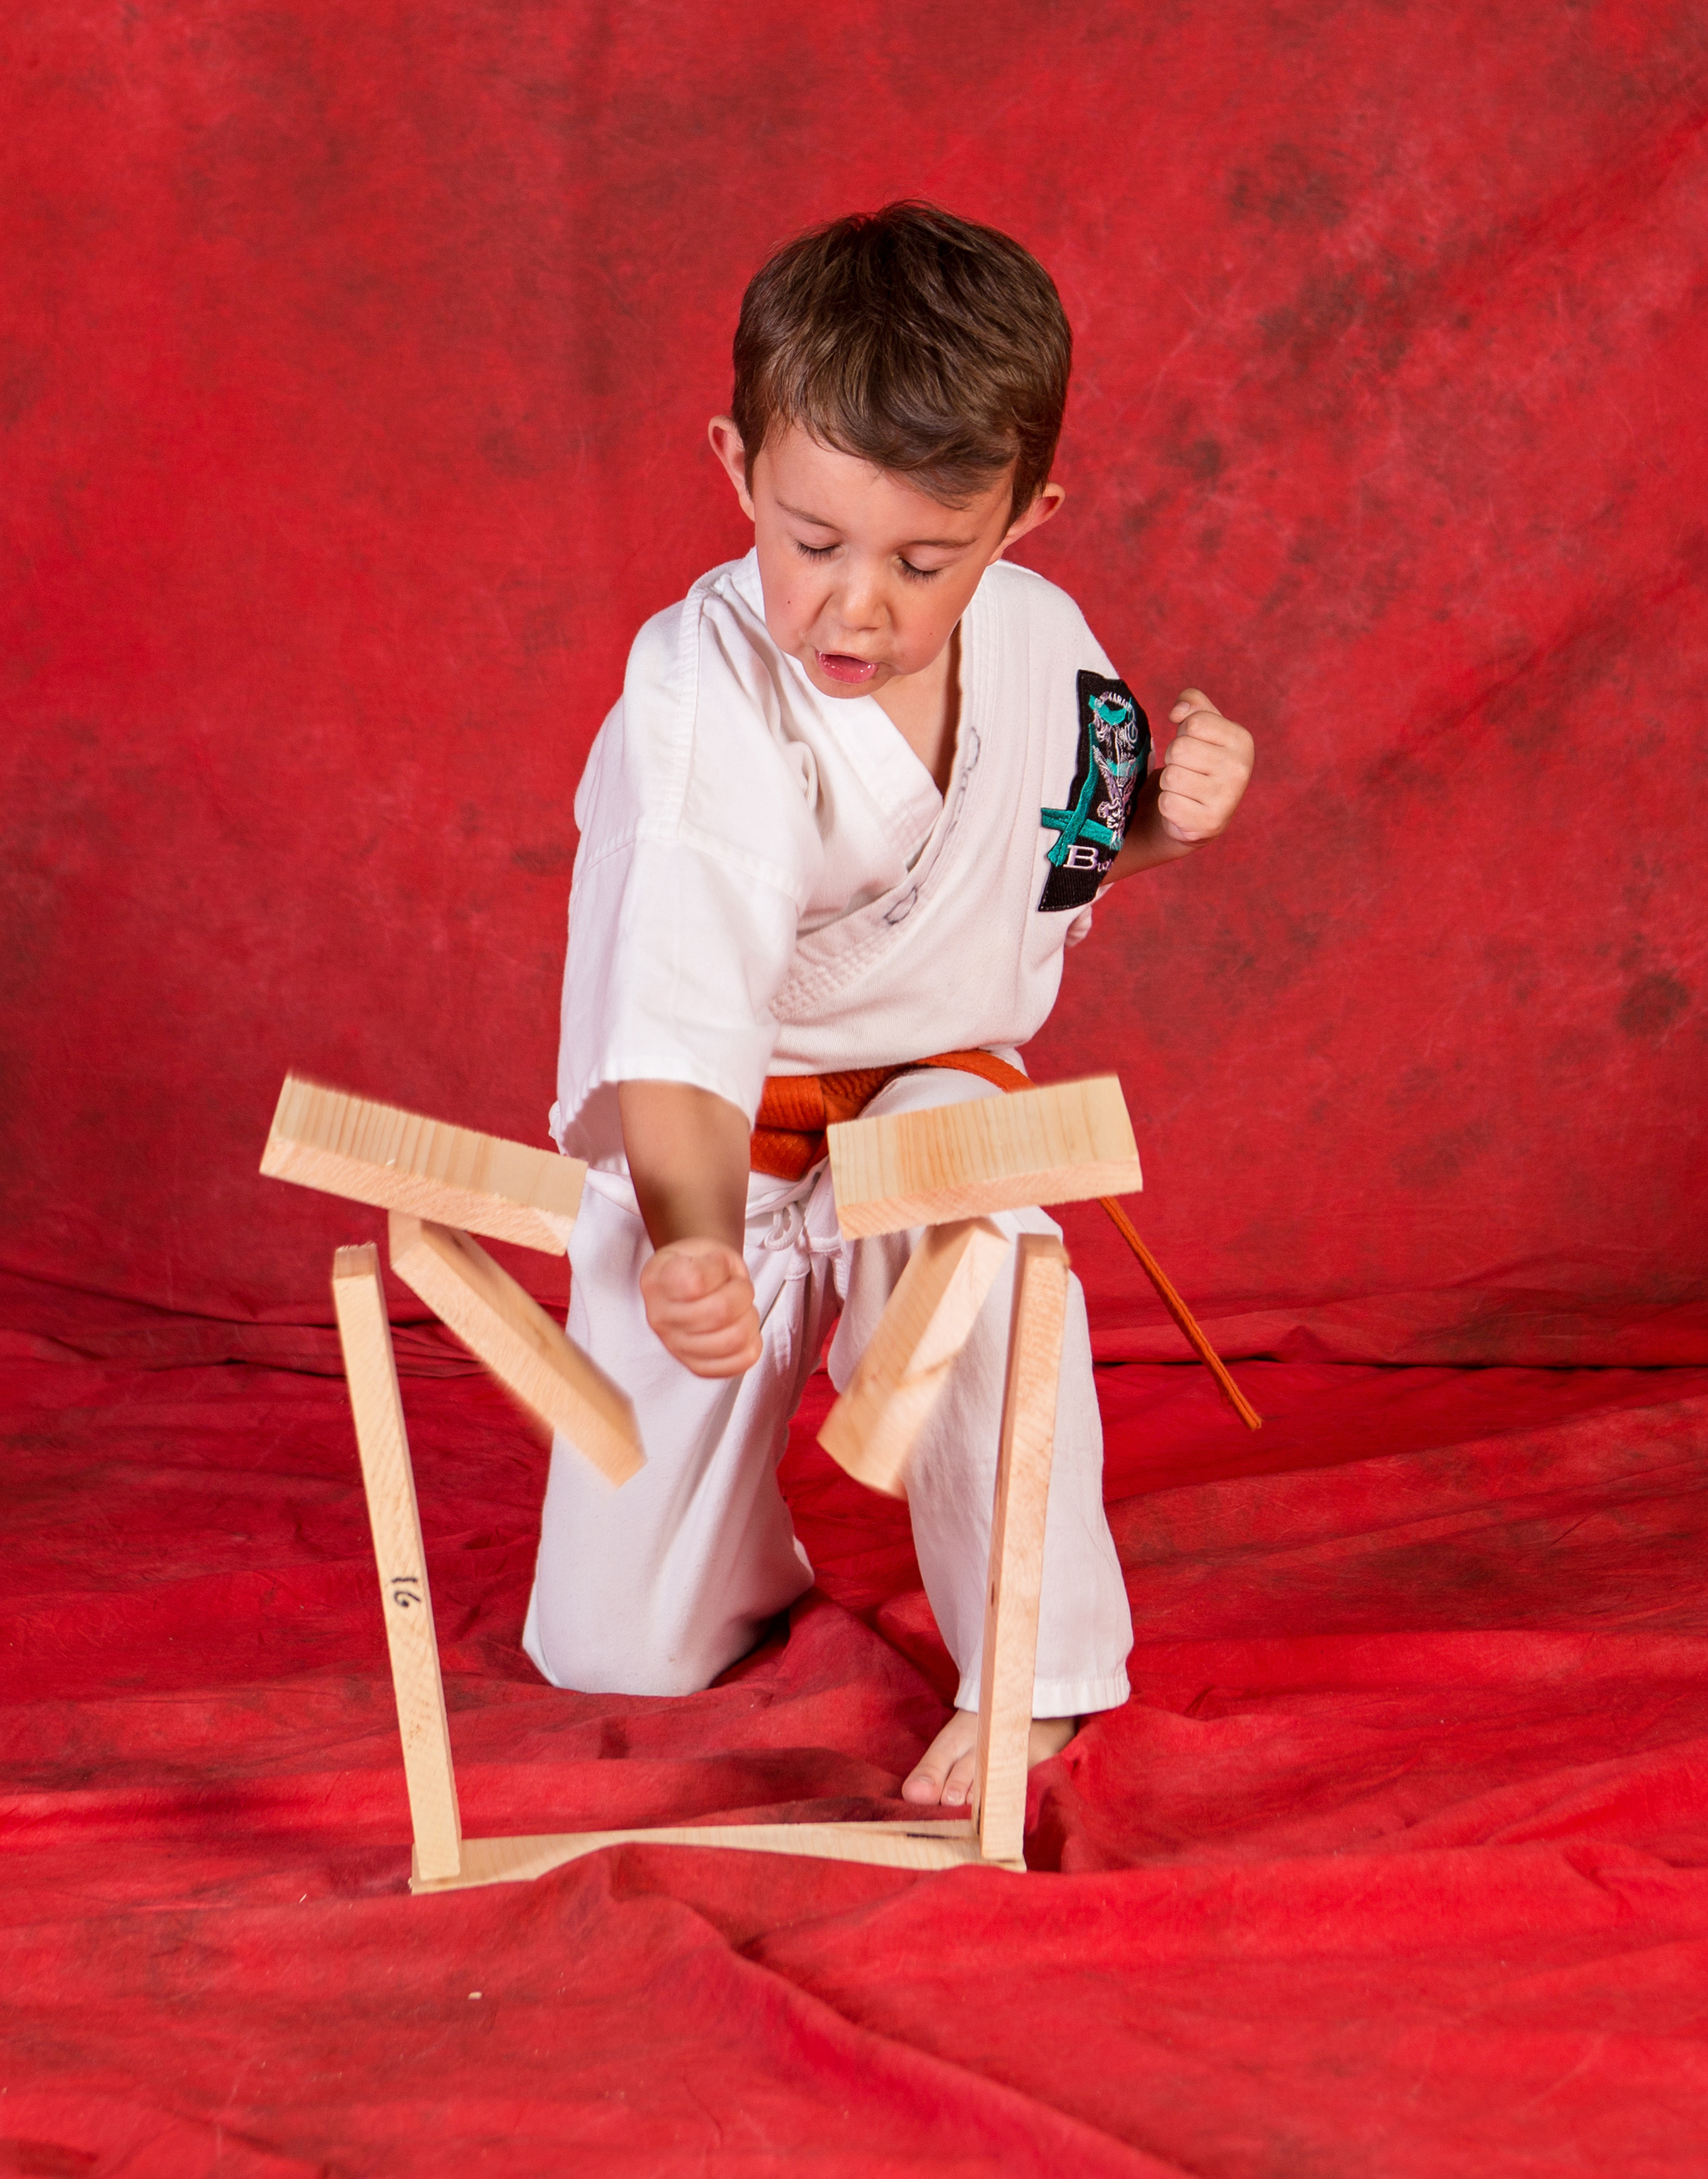 young karate student breaks wodd boards